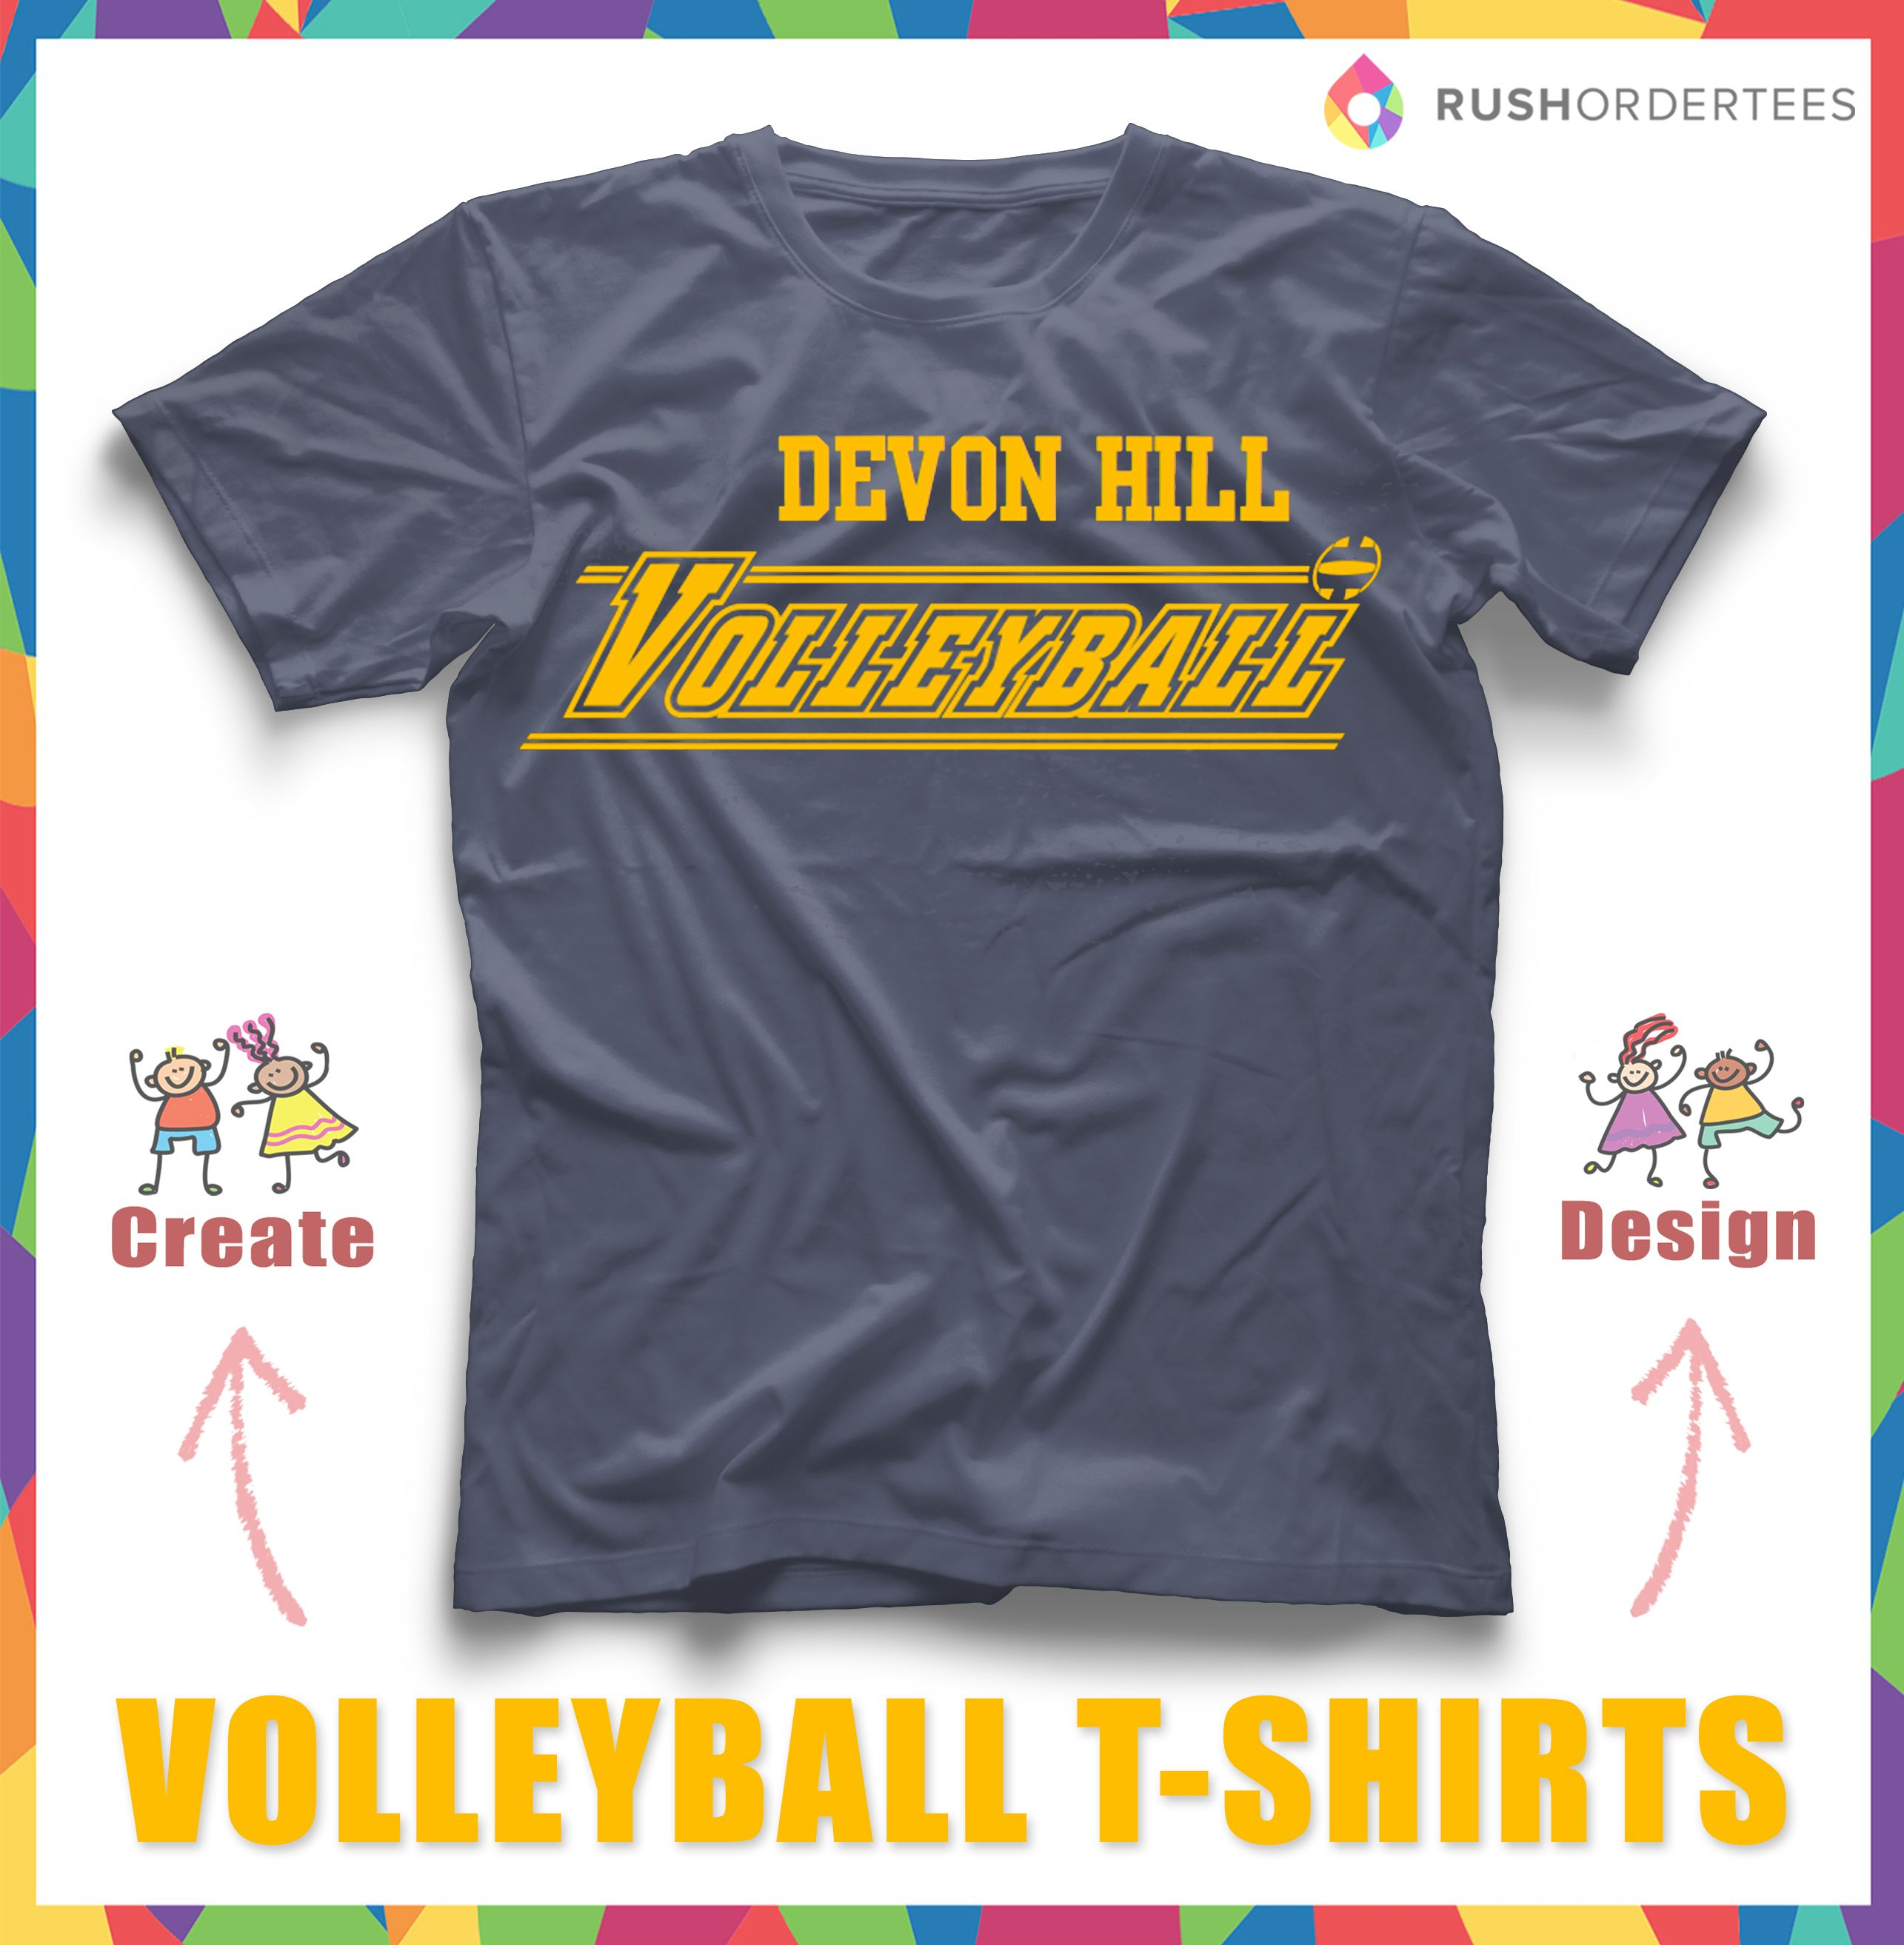 Volleyball Custom T Shirt Design Create And Edit Your Team Name With Our Online Design S Volleyball Shirt Designs T Shirt Design Template Custom Tshirt Design